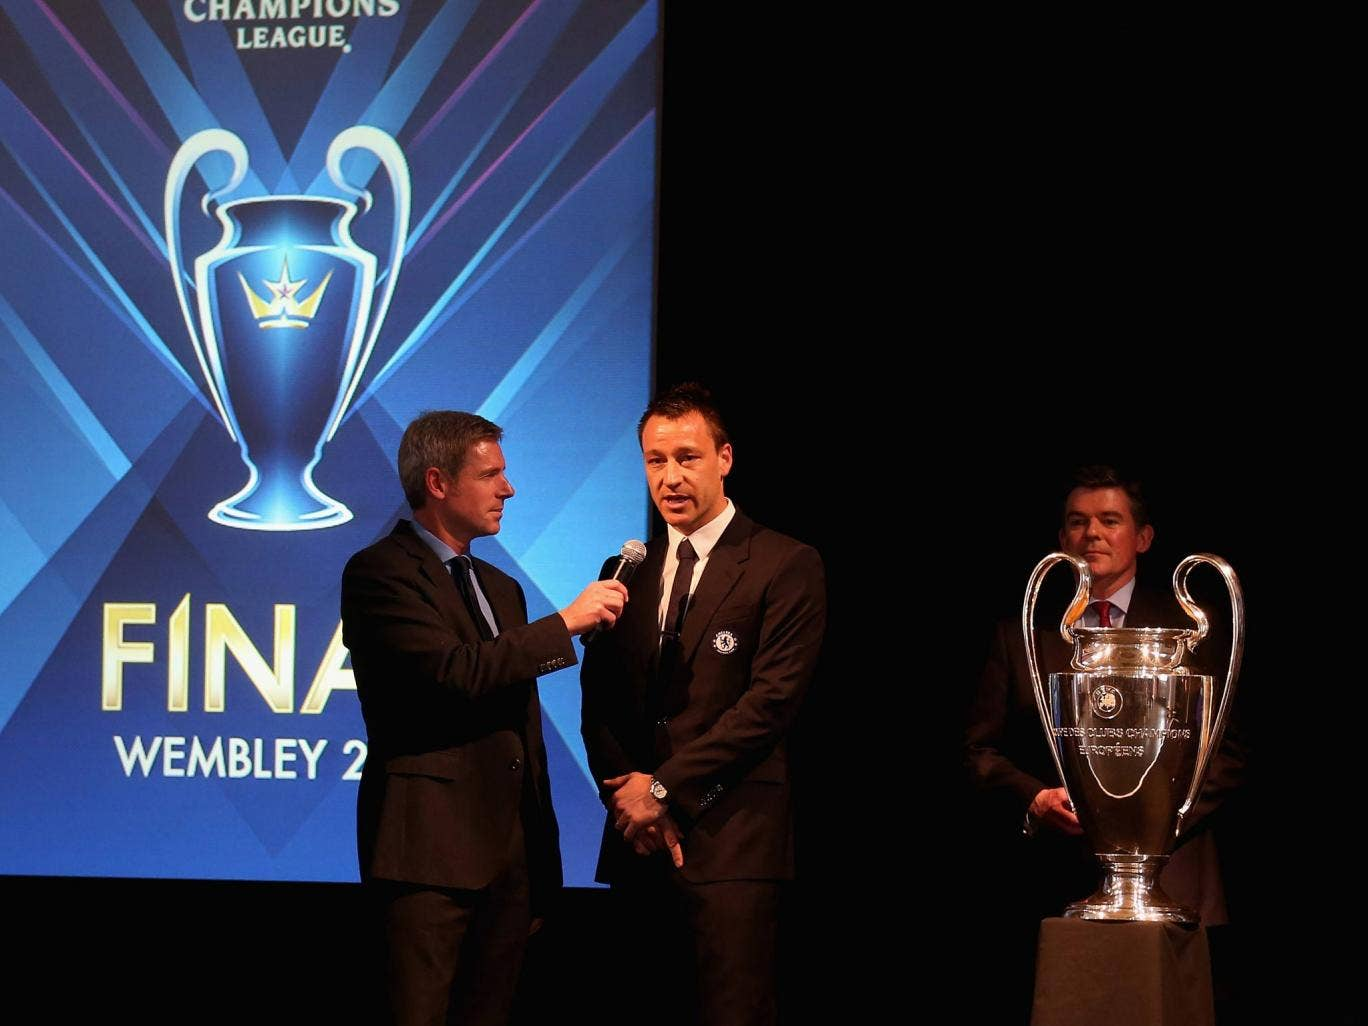 John Terry at an event to hand over the Champions League trophy